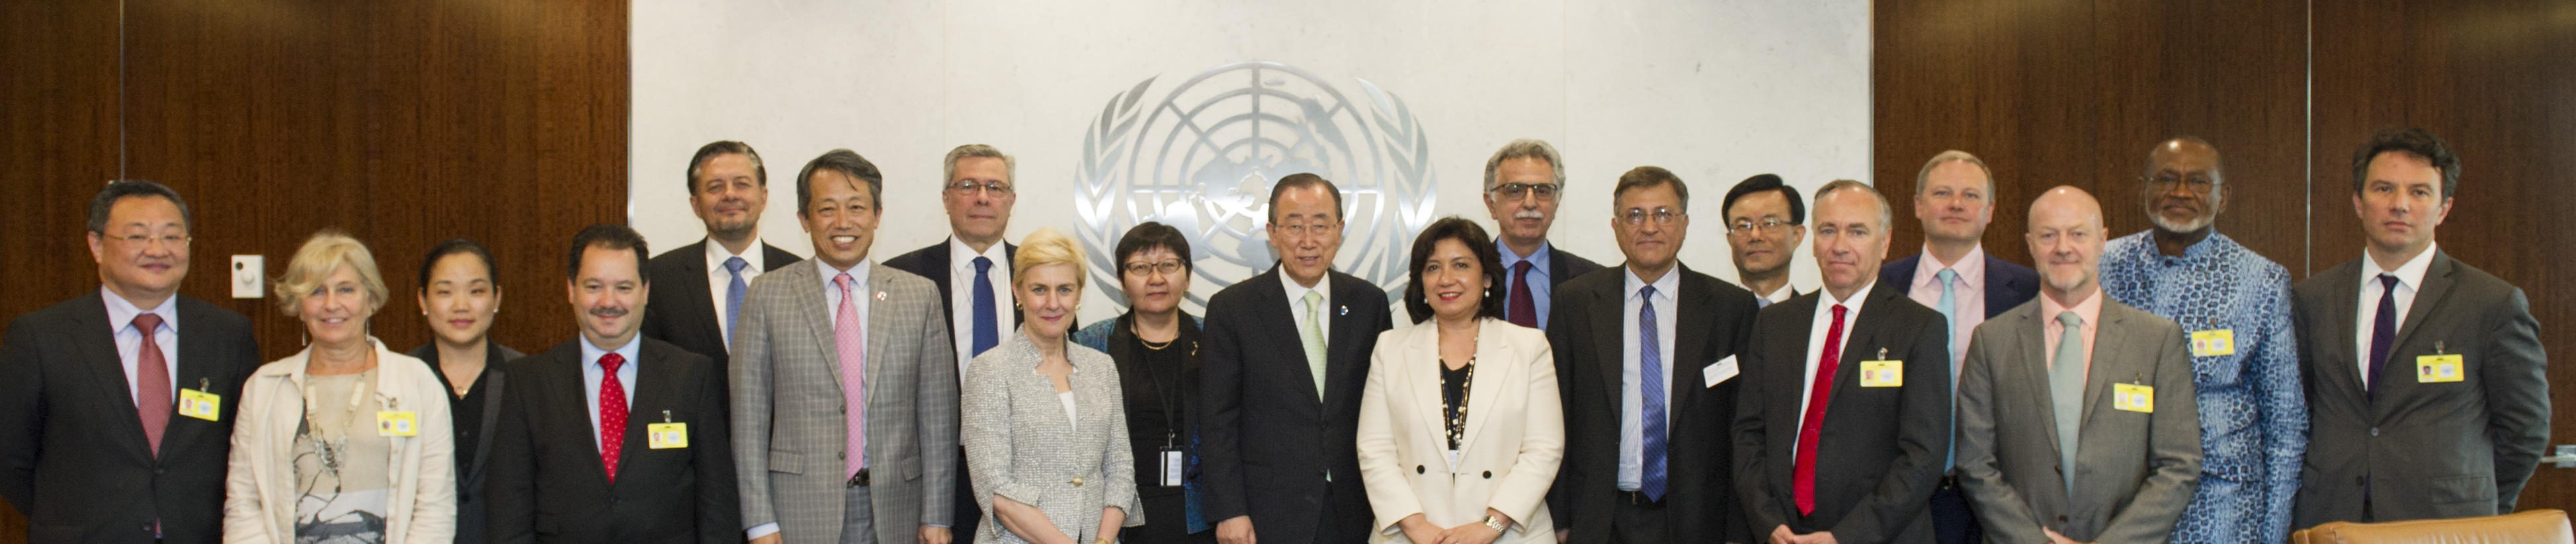 Meeting of Secretary-General Ban Ki-moon with the board members of his Advisory Board on Disarmament Matters, 2016.